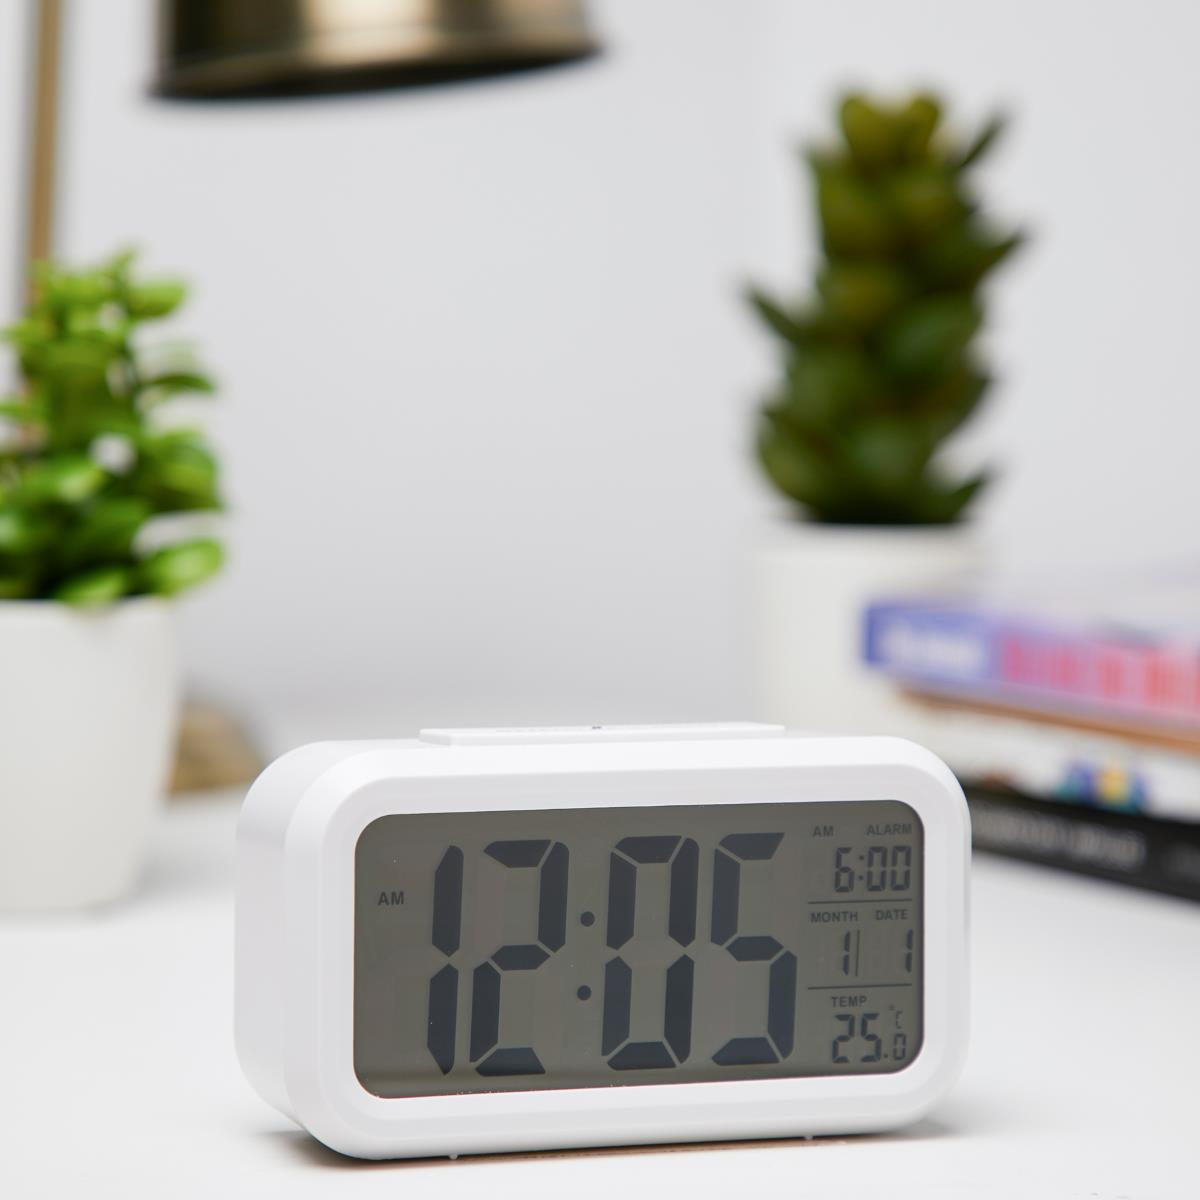 Checkmate Chapman Multifunction Digital Alarm Clock White 14cm VGW-1065White Lifestyle1